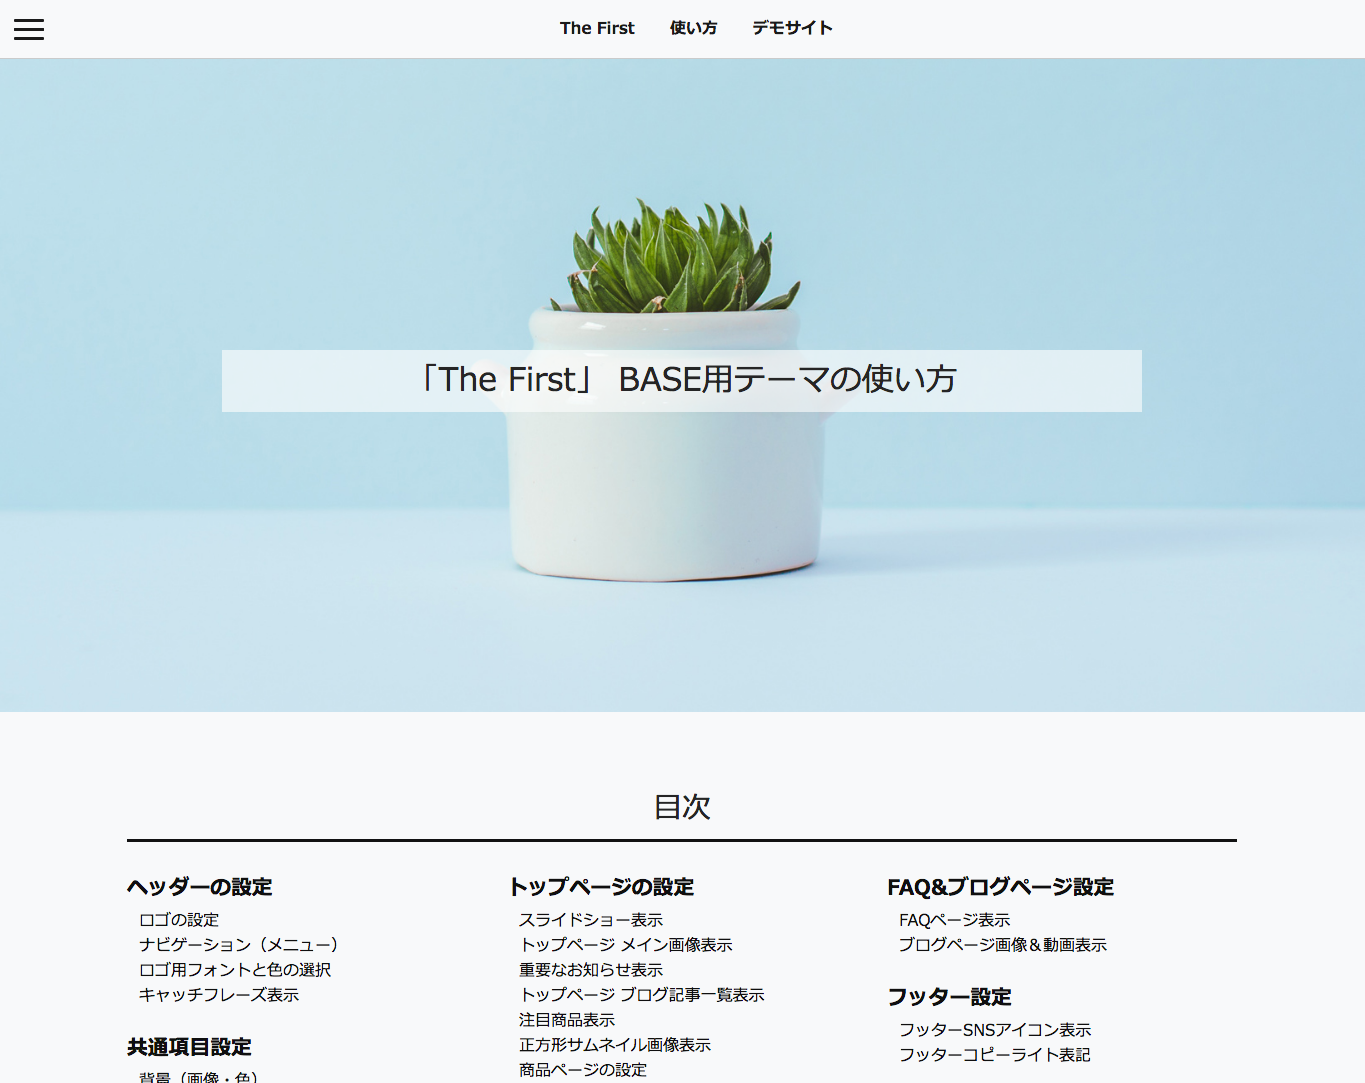 BASE用テーマ 「The First」の使い方のページ